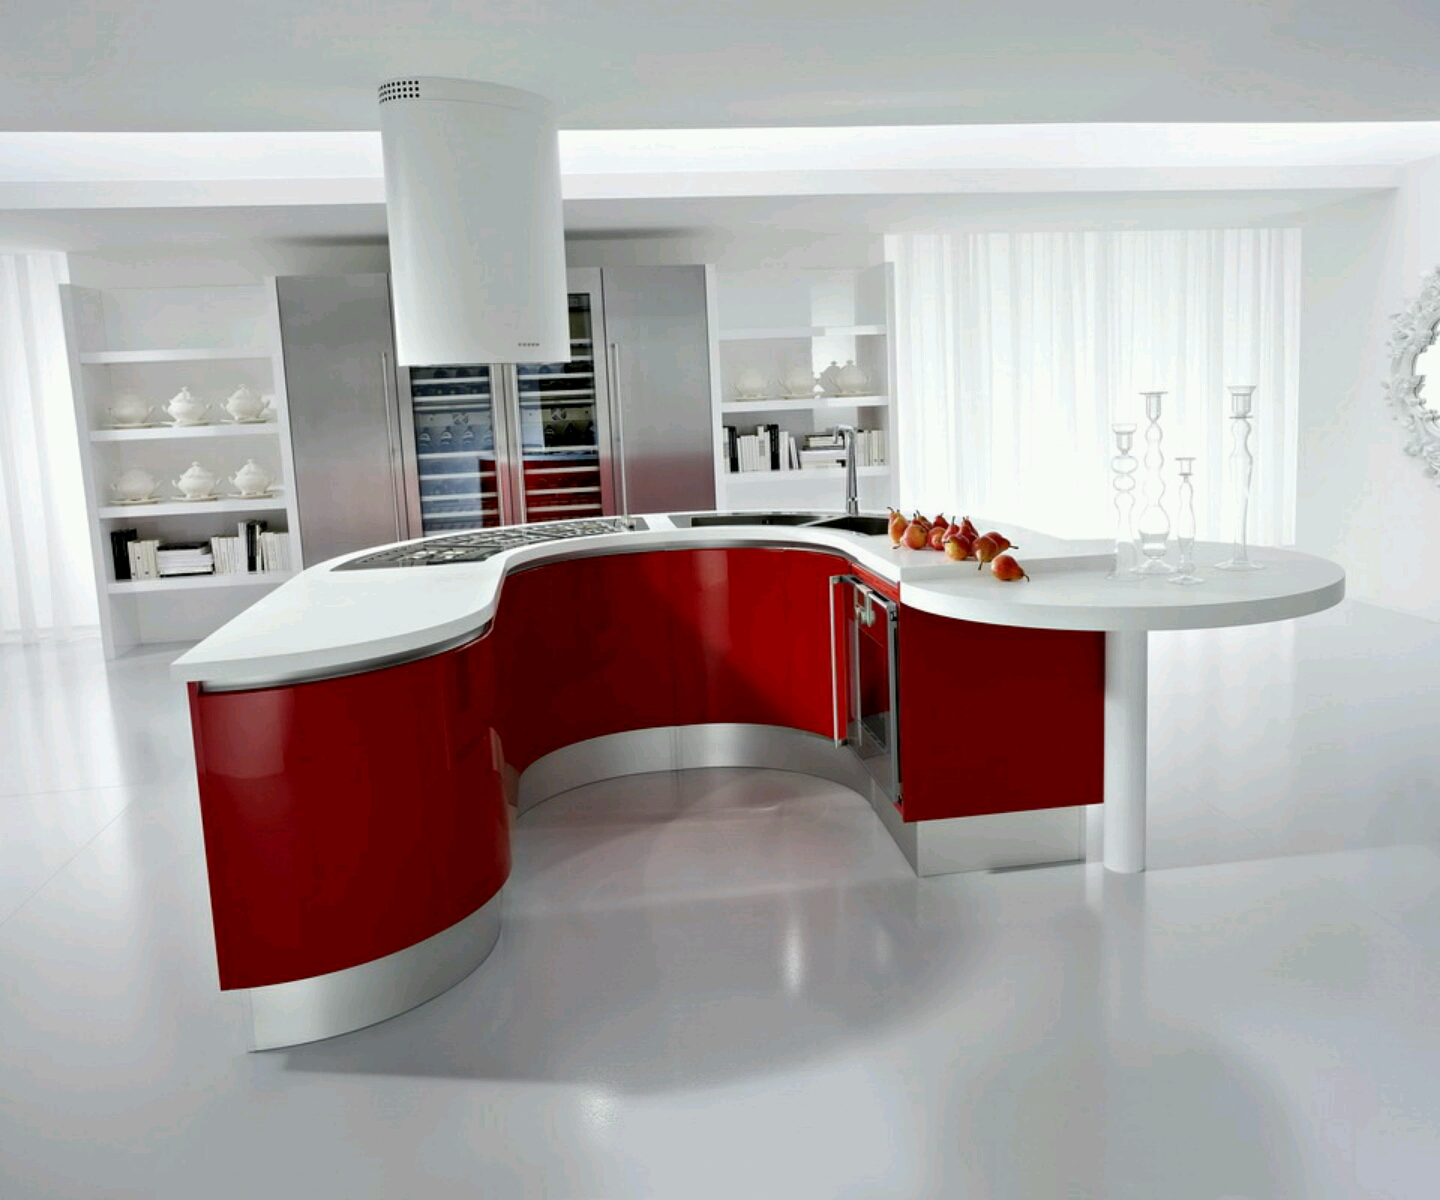 Modern kitchen cabinets designs ideas furniture gallery for Contemporary style kitchen cabinets